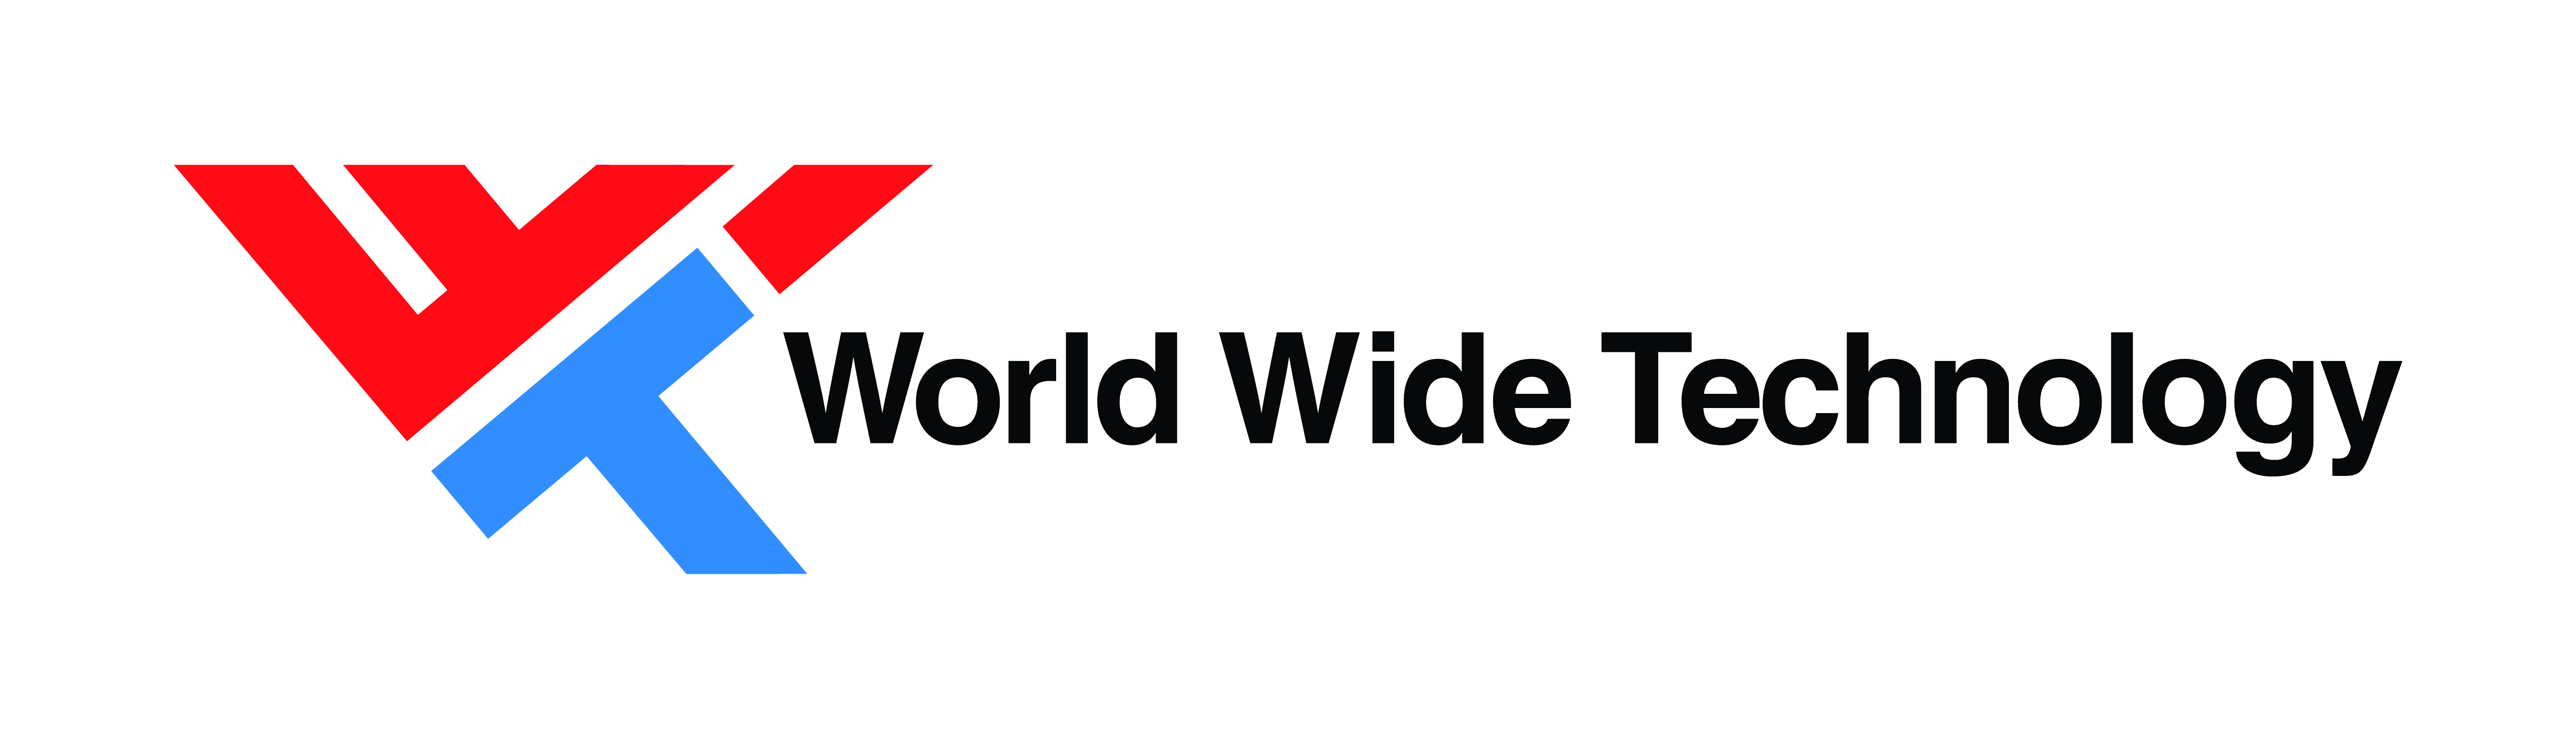 World Wide Technology, Inc. Logo